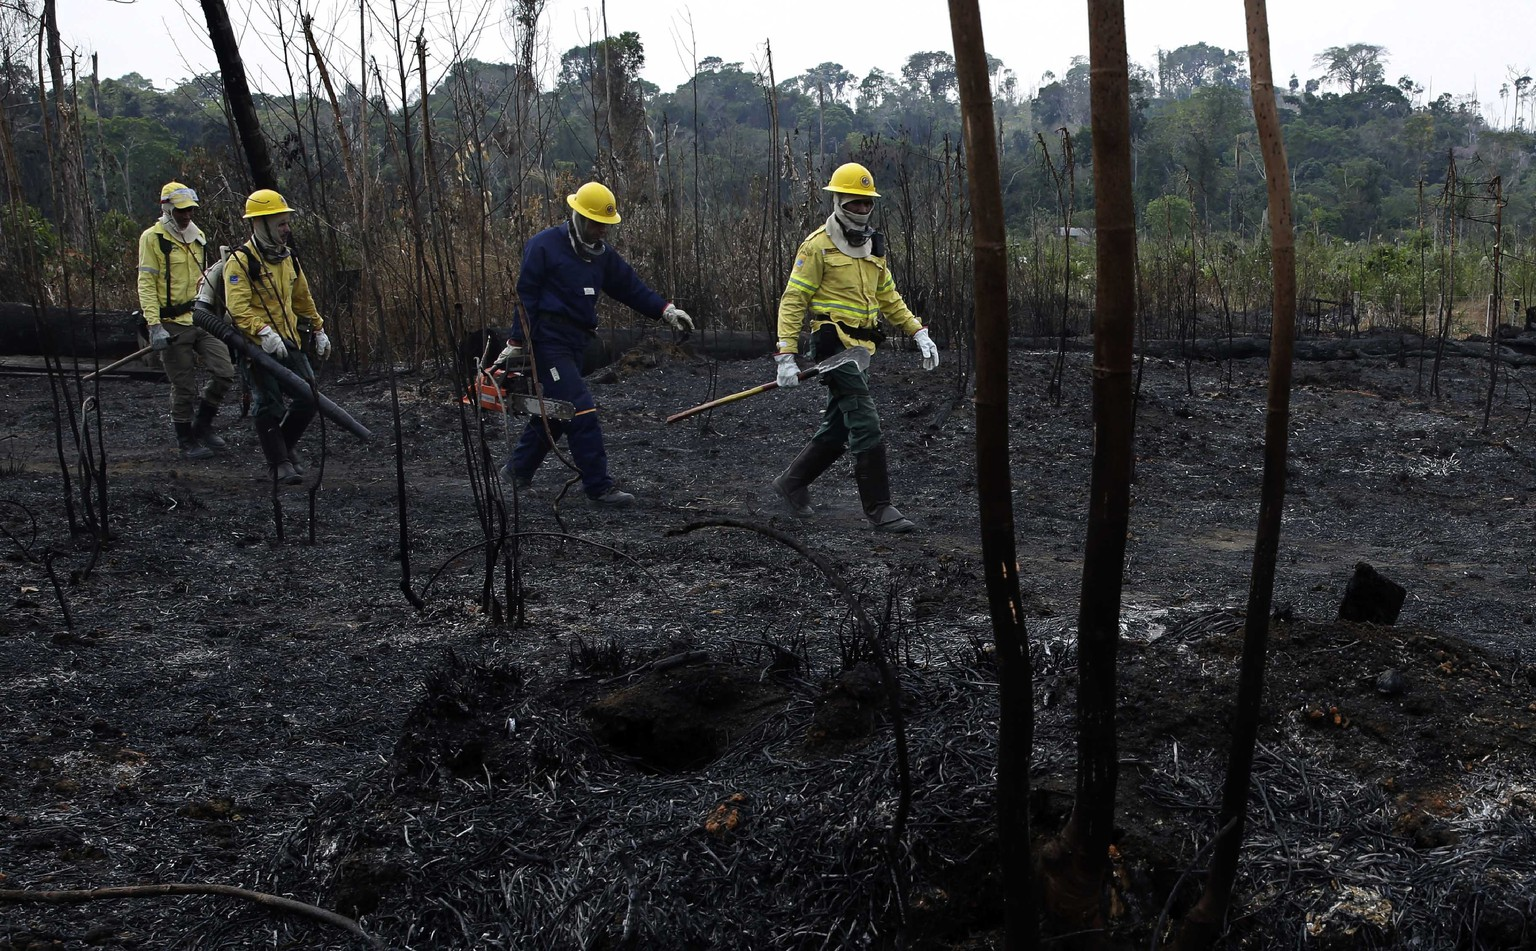 Firefighters walk across charred land to another area as they work to put out fires in the Vila Nova Samuel region, along the road to Jacunda National Forest near the city of Porto Velho in Rondonia state, part of Brazil's Amazon, Sunday, Aug. 25, 2019. Leaders of the Group of Seven nations said Sunday they were preparing to help Brazil fight the fires burning across the Amazon rainforest and repair the damage even as tens of thousands of soldiers were being deployed to fight the blazes that have caused global alarm. (AP Photo/Eraldo Peres)